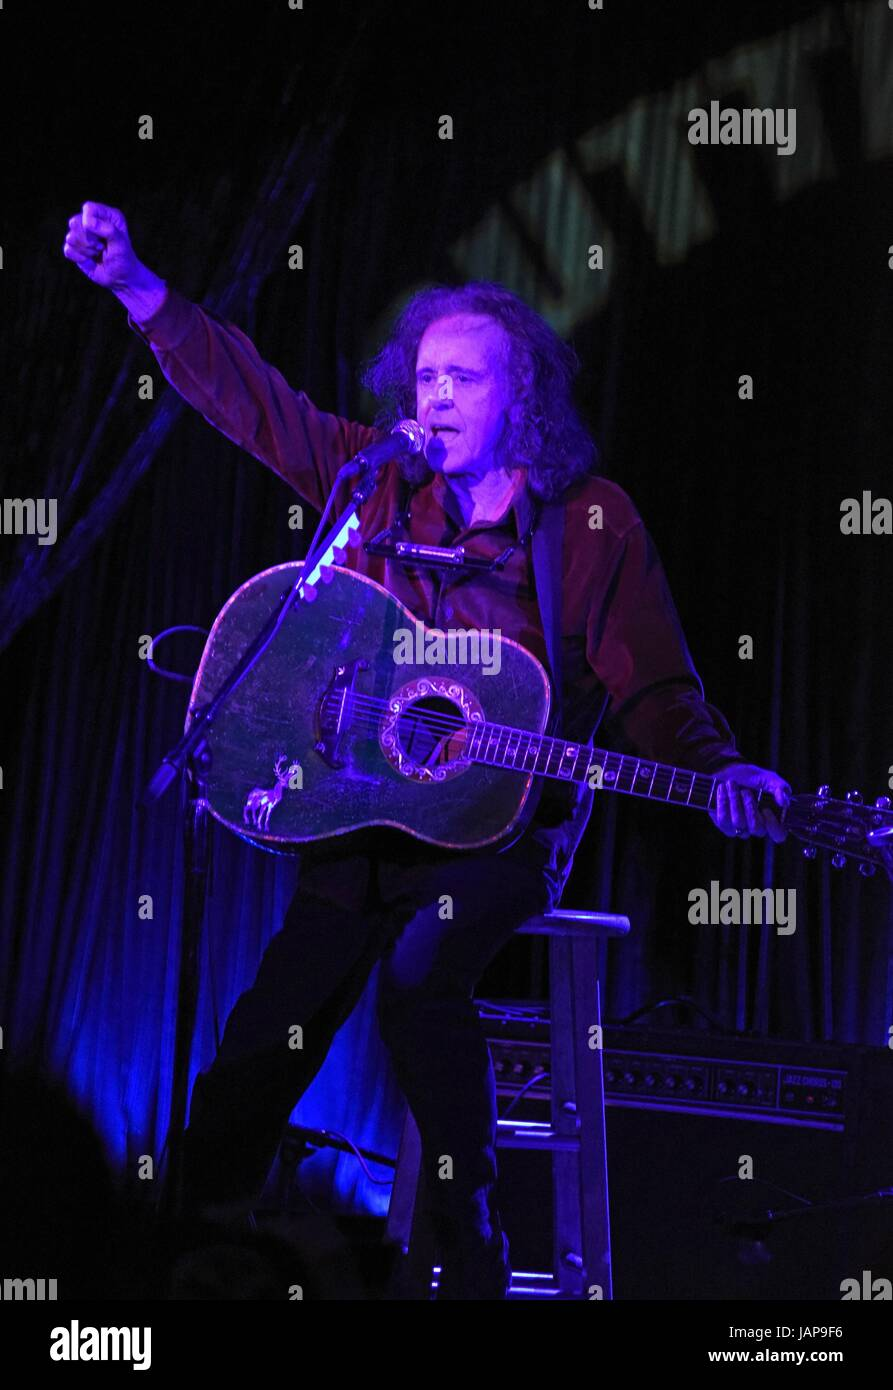 Donovan Leitch on stage for Donovan Leitch in Concert, Cutting Room, New York, NY June 6, 2017. Photo By: Derek - Stock Image